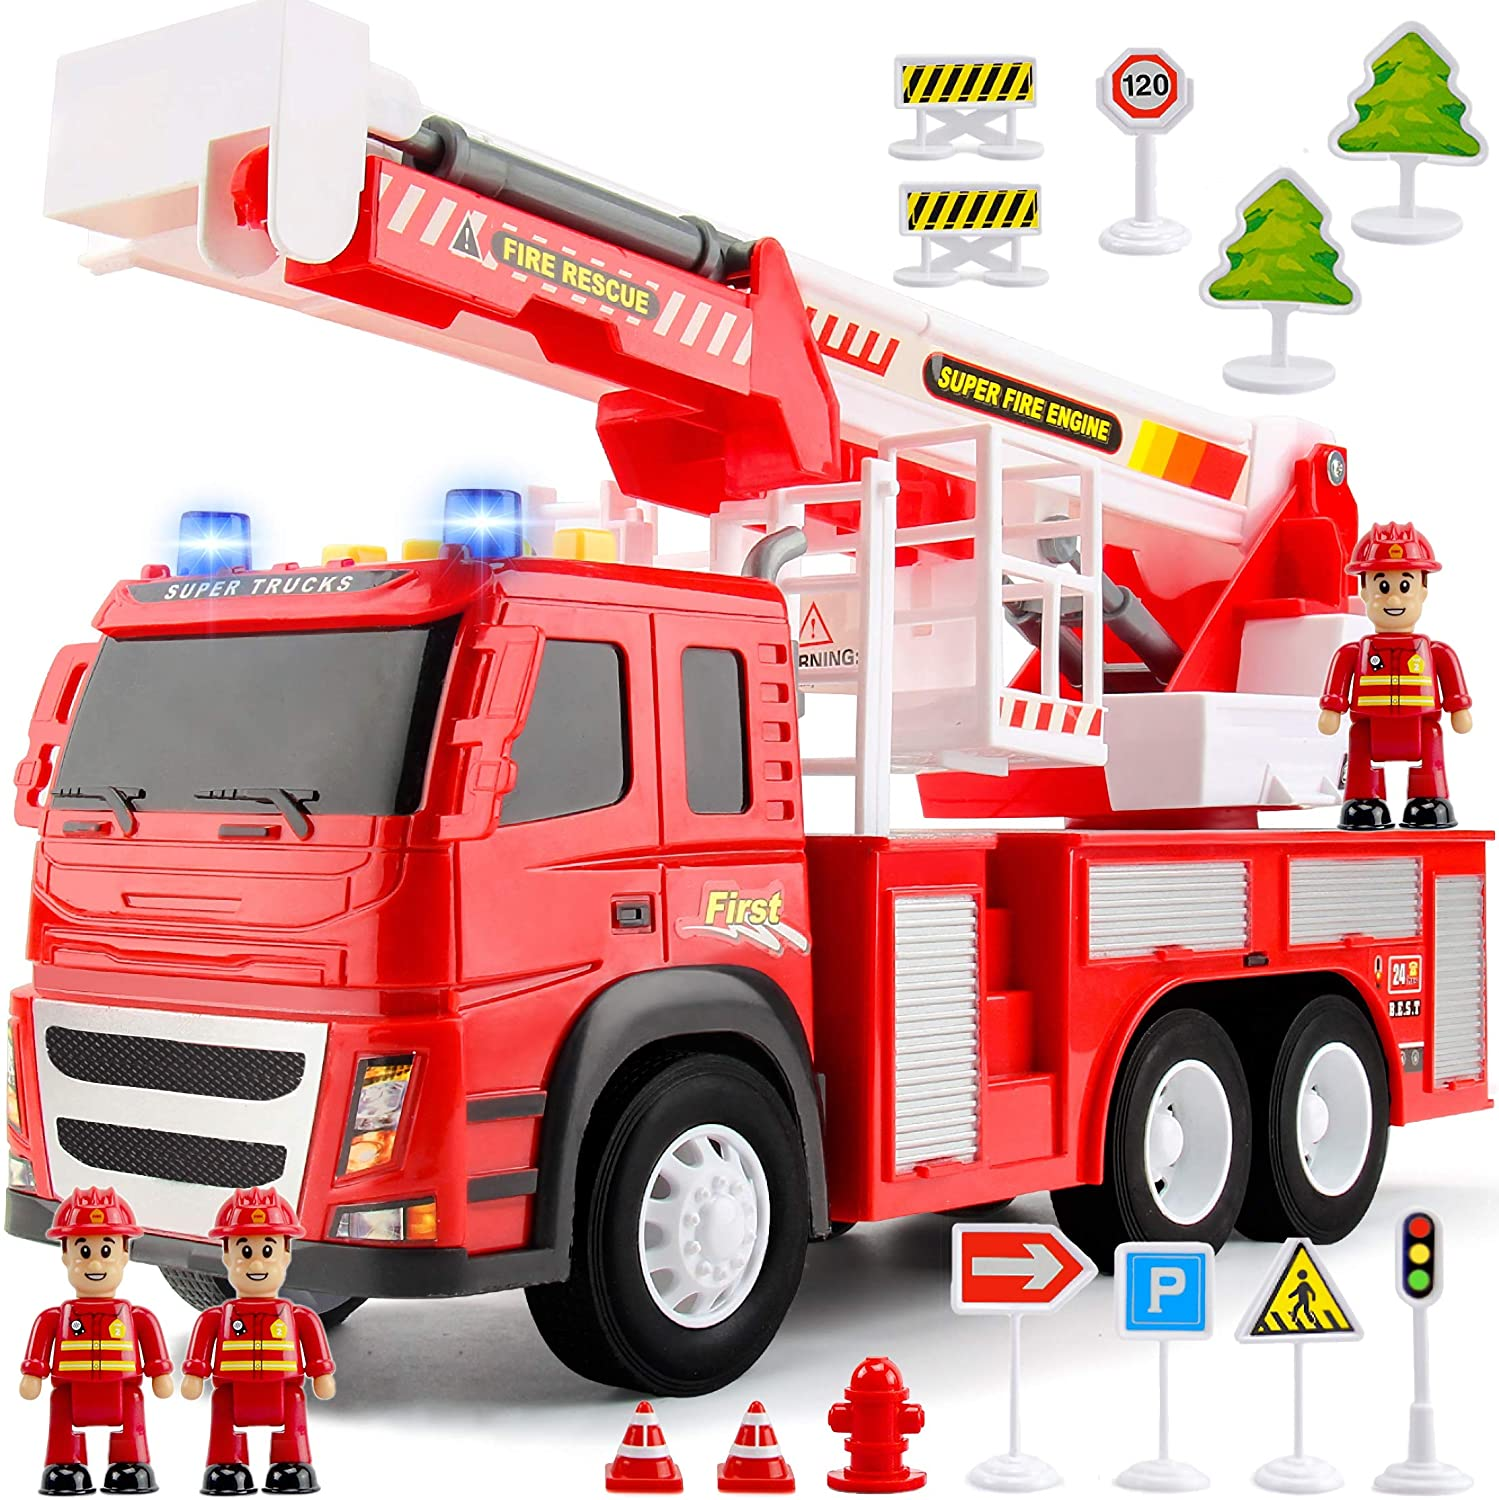 Fire Truck Playset – 1:12 Scale Large Size Toys - Realistic Fire Engine, Extending Rotating Ladder, 3 Firemen, Road Signs, Lights, Sounds - Friction-Powered Truck for Toddlers, Boys, Girls Age 2 3 4 5